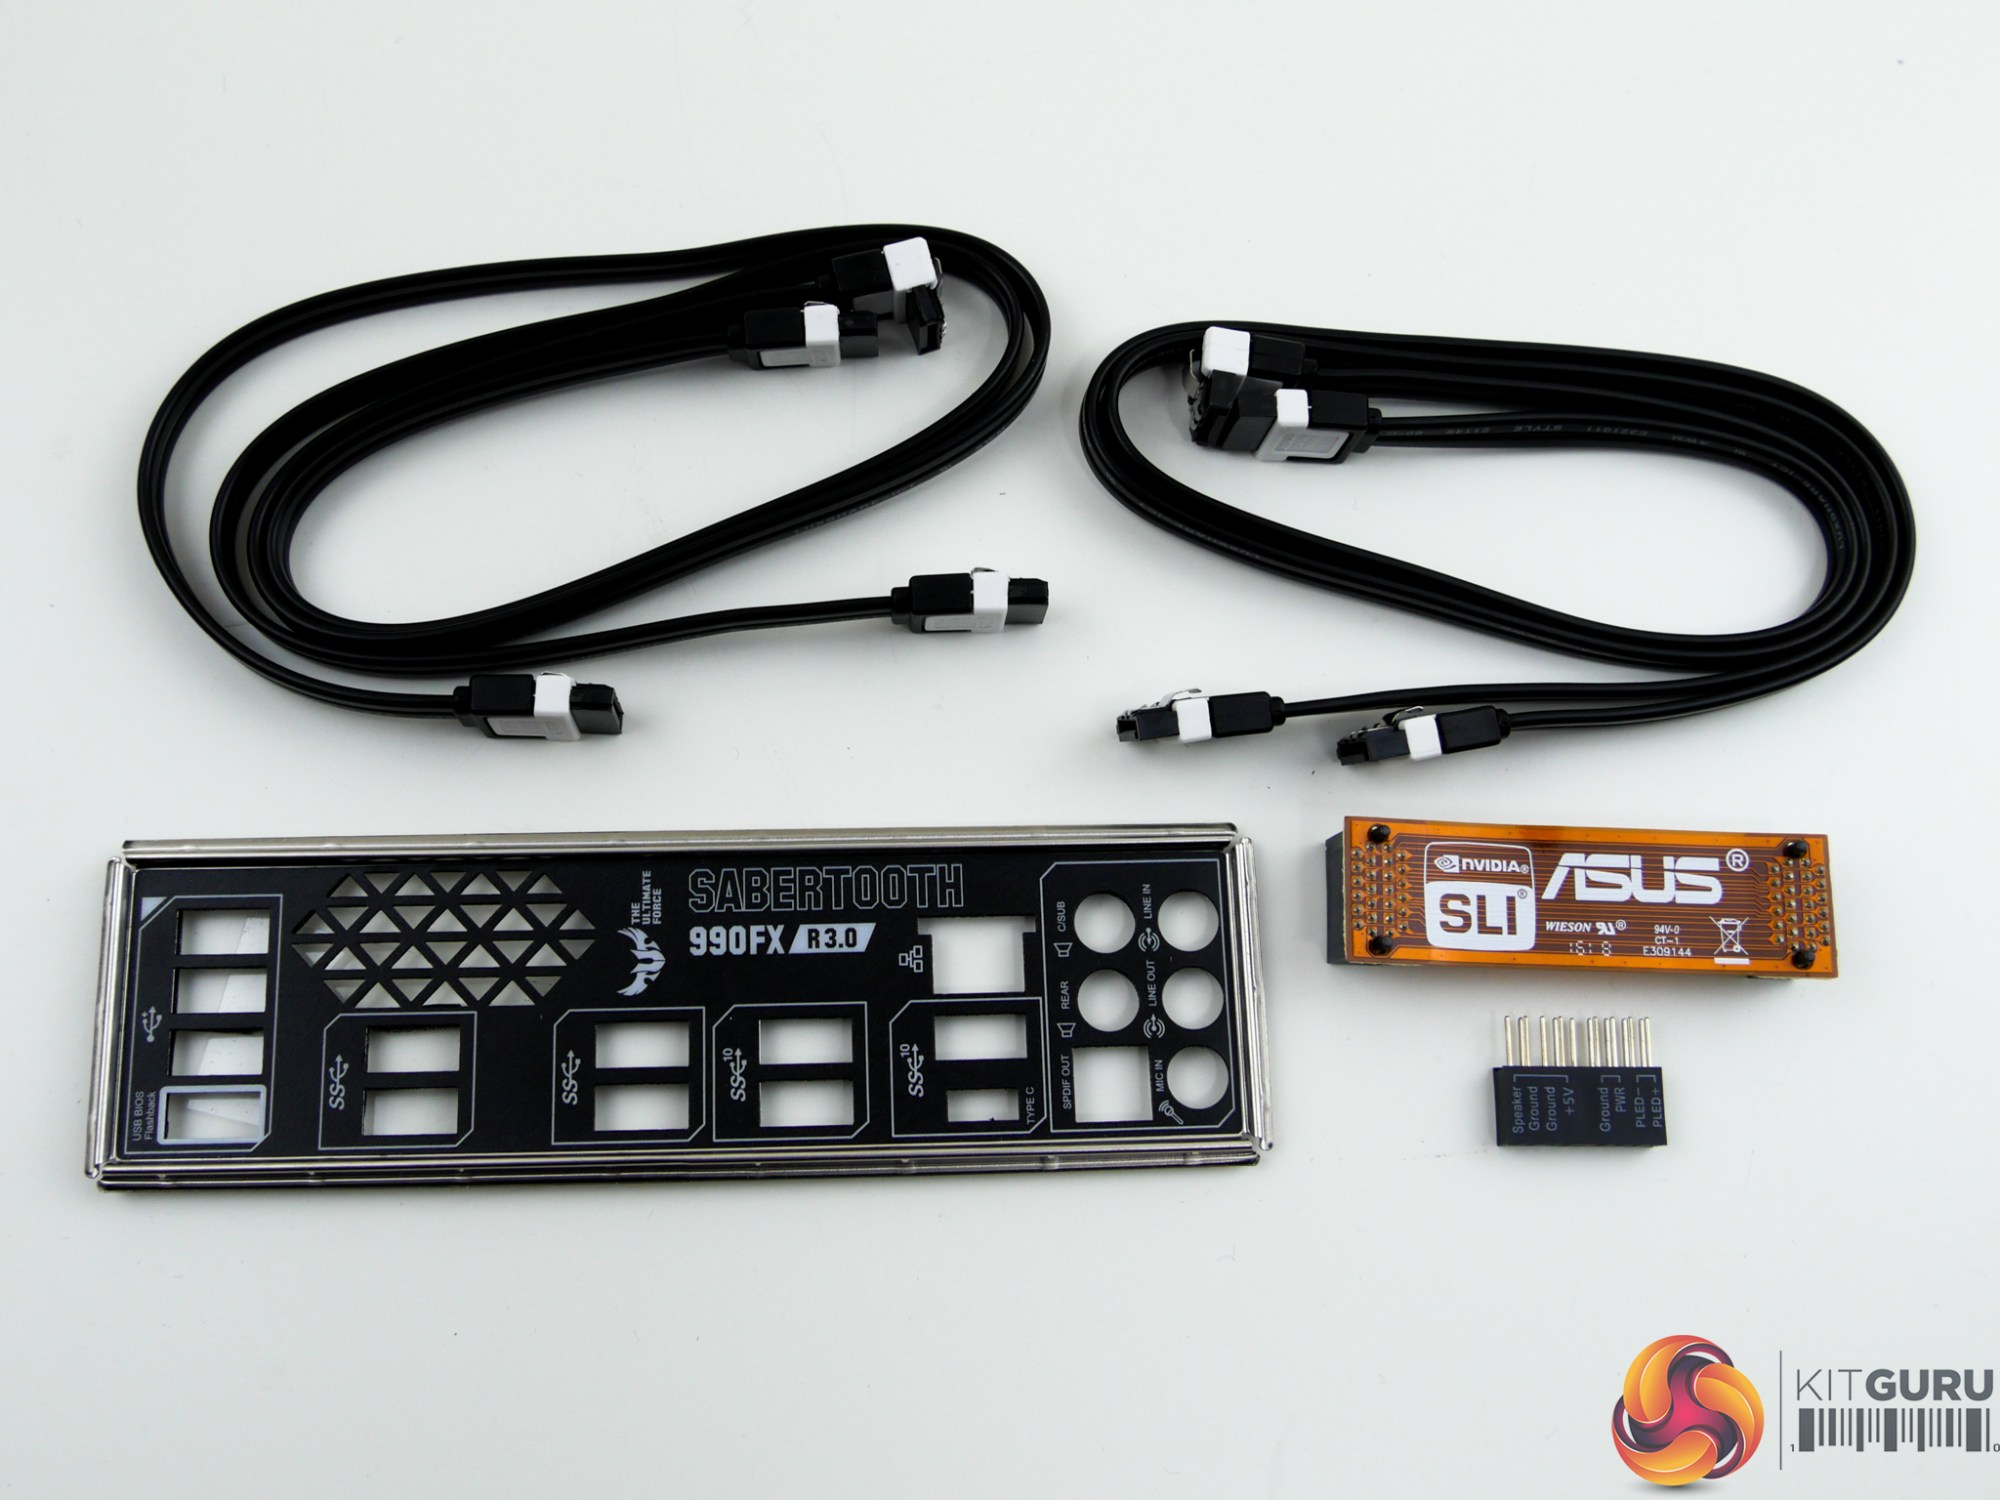 hight resolution of four sata cables the rear io shield with a vented section asus q connector block and an sli bridge form the accessory bundle